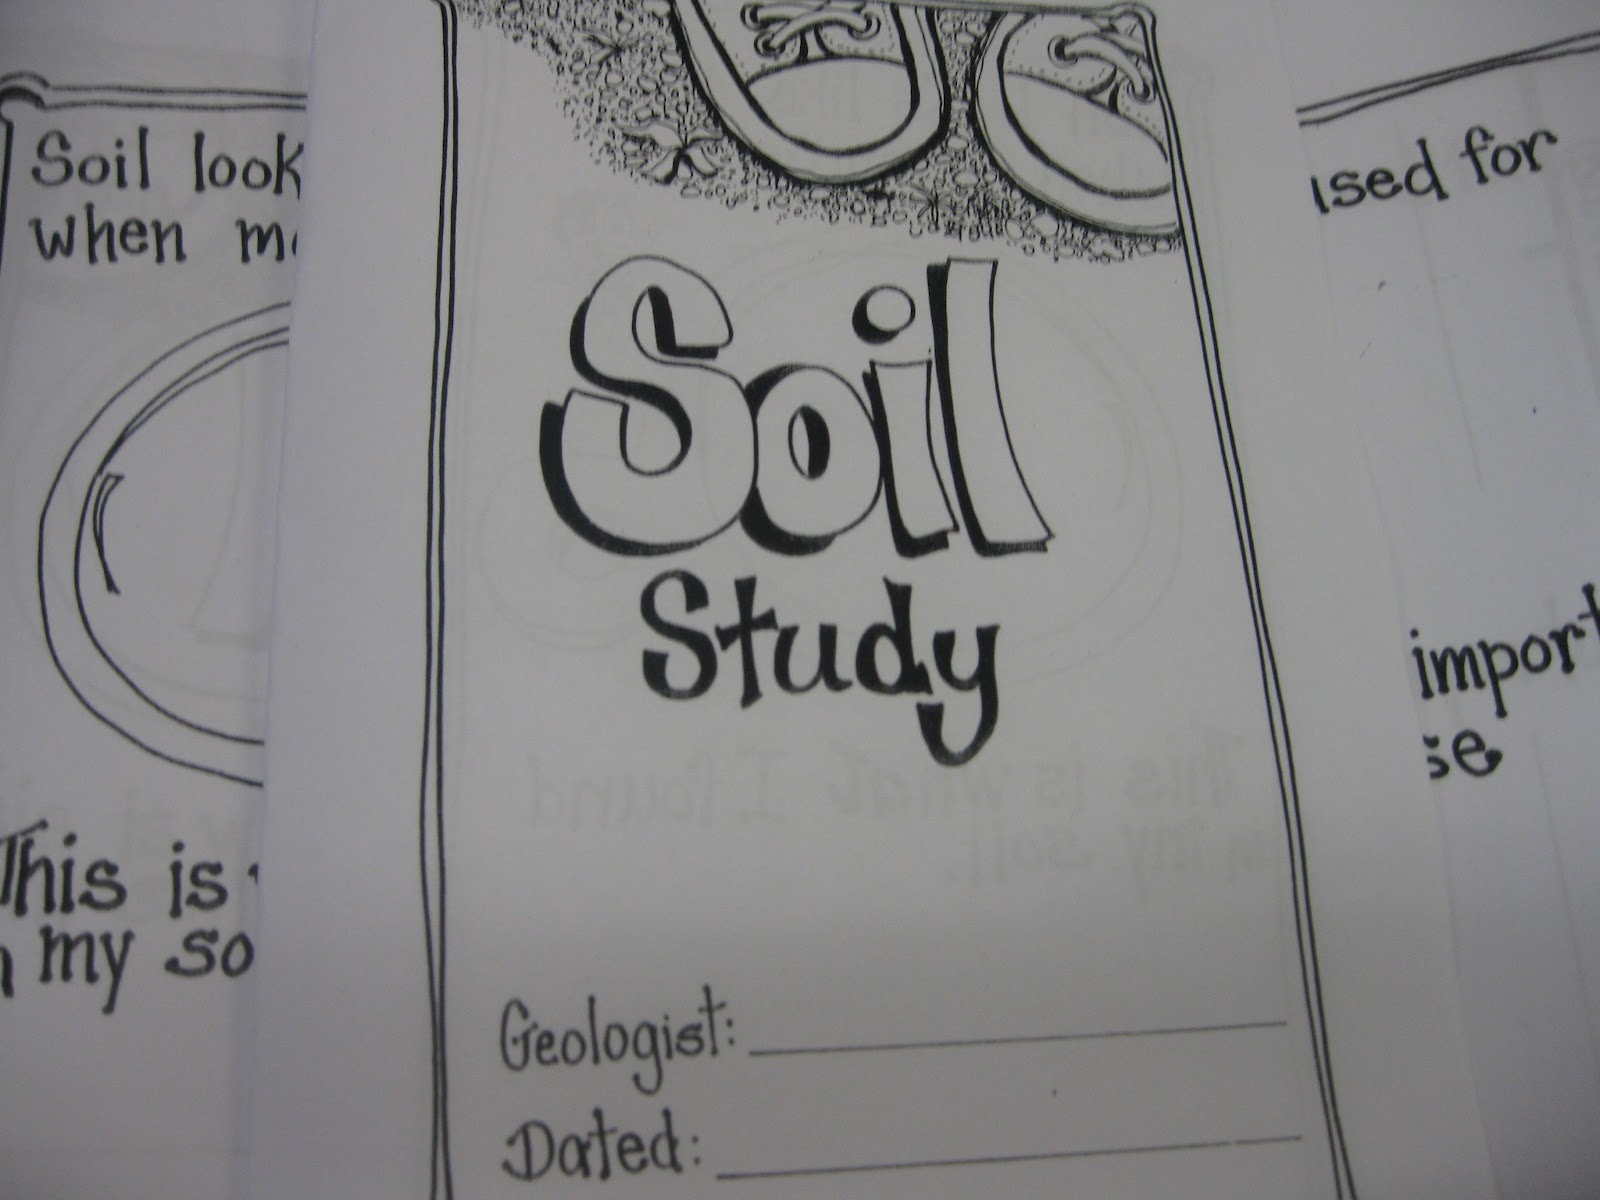 2nd grade science worksheets soil 2nd best free for Soil 2nd grade